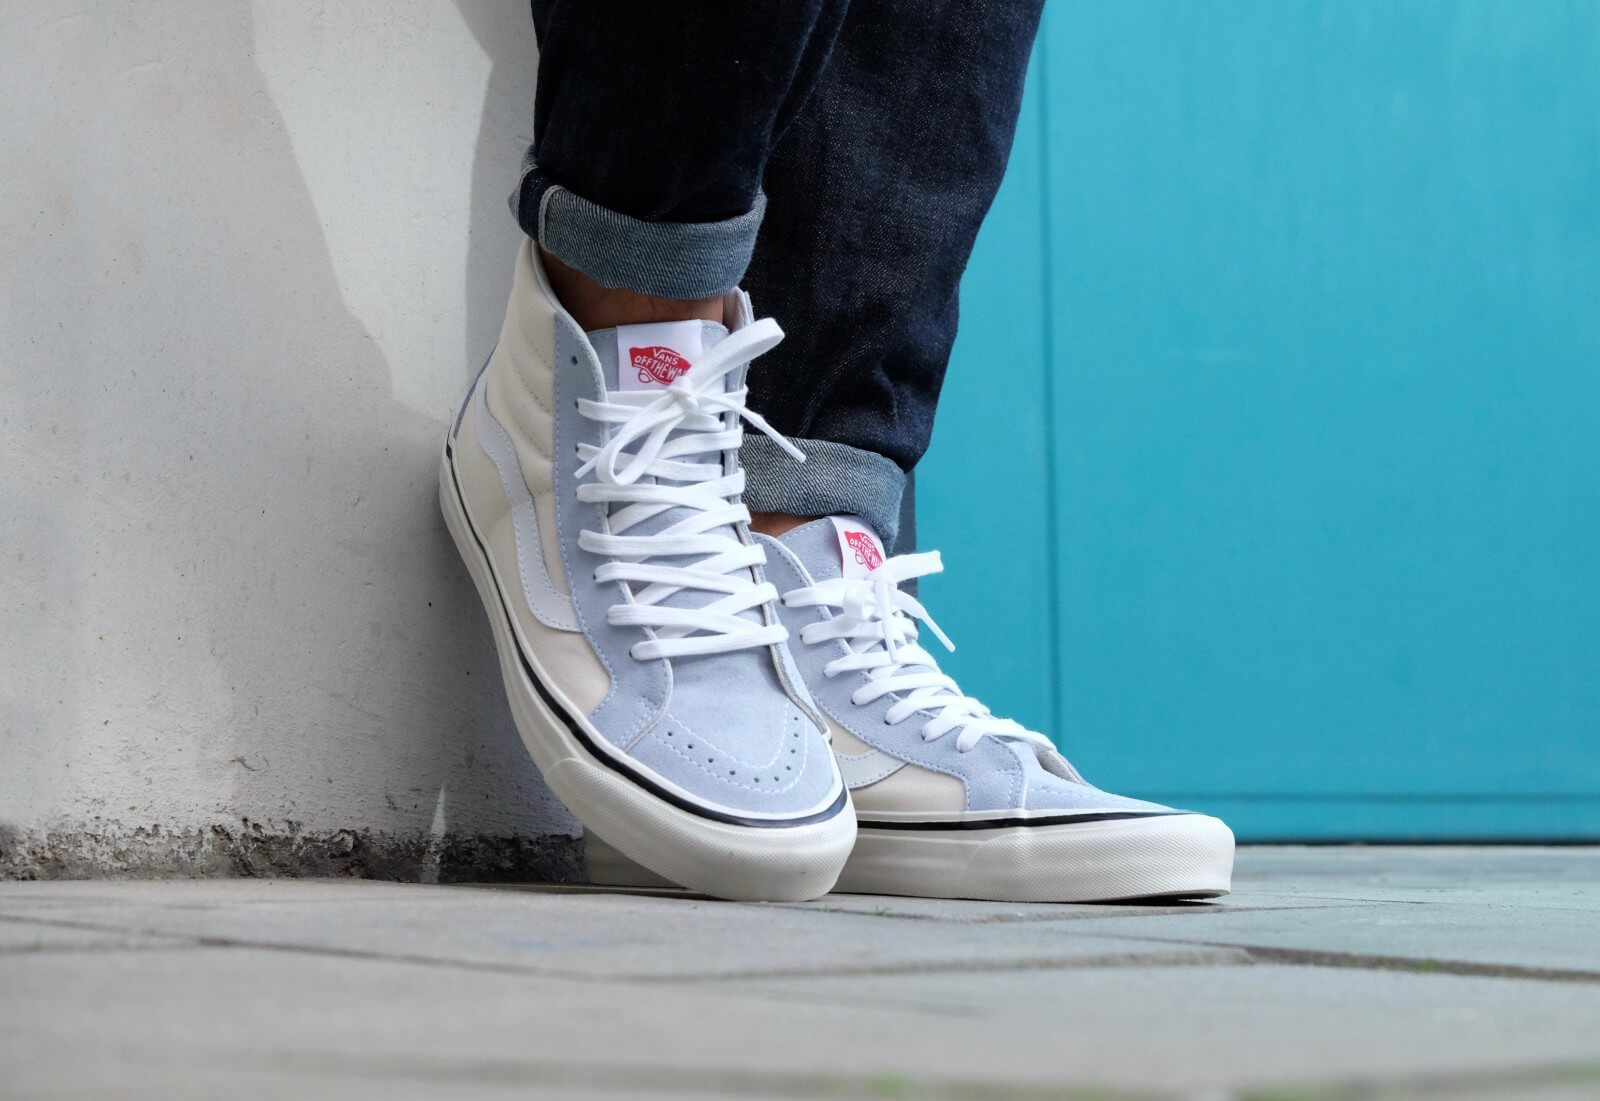 808b05b51ef8 Buy vans sk8 hi light blue